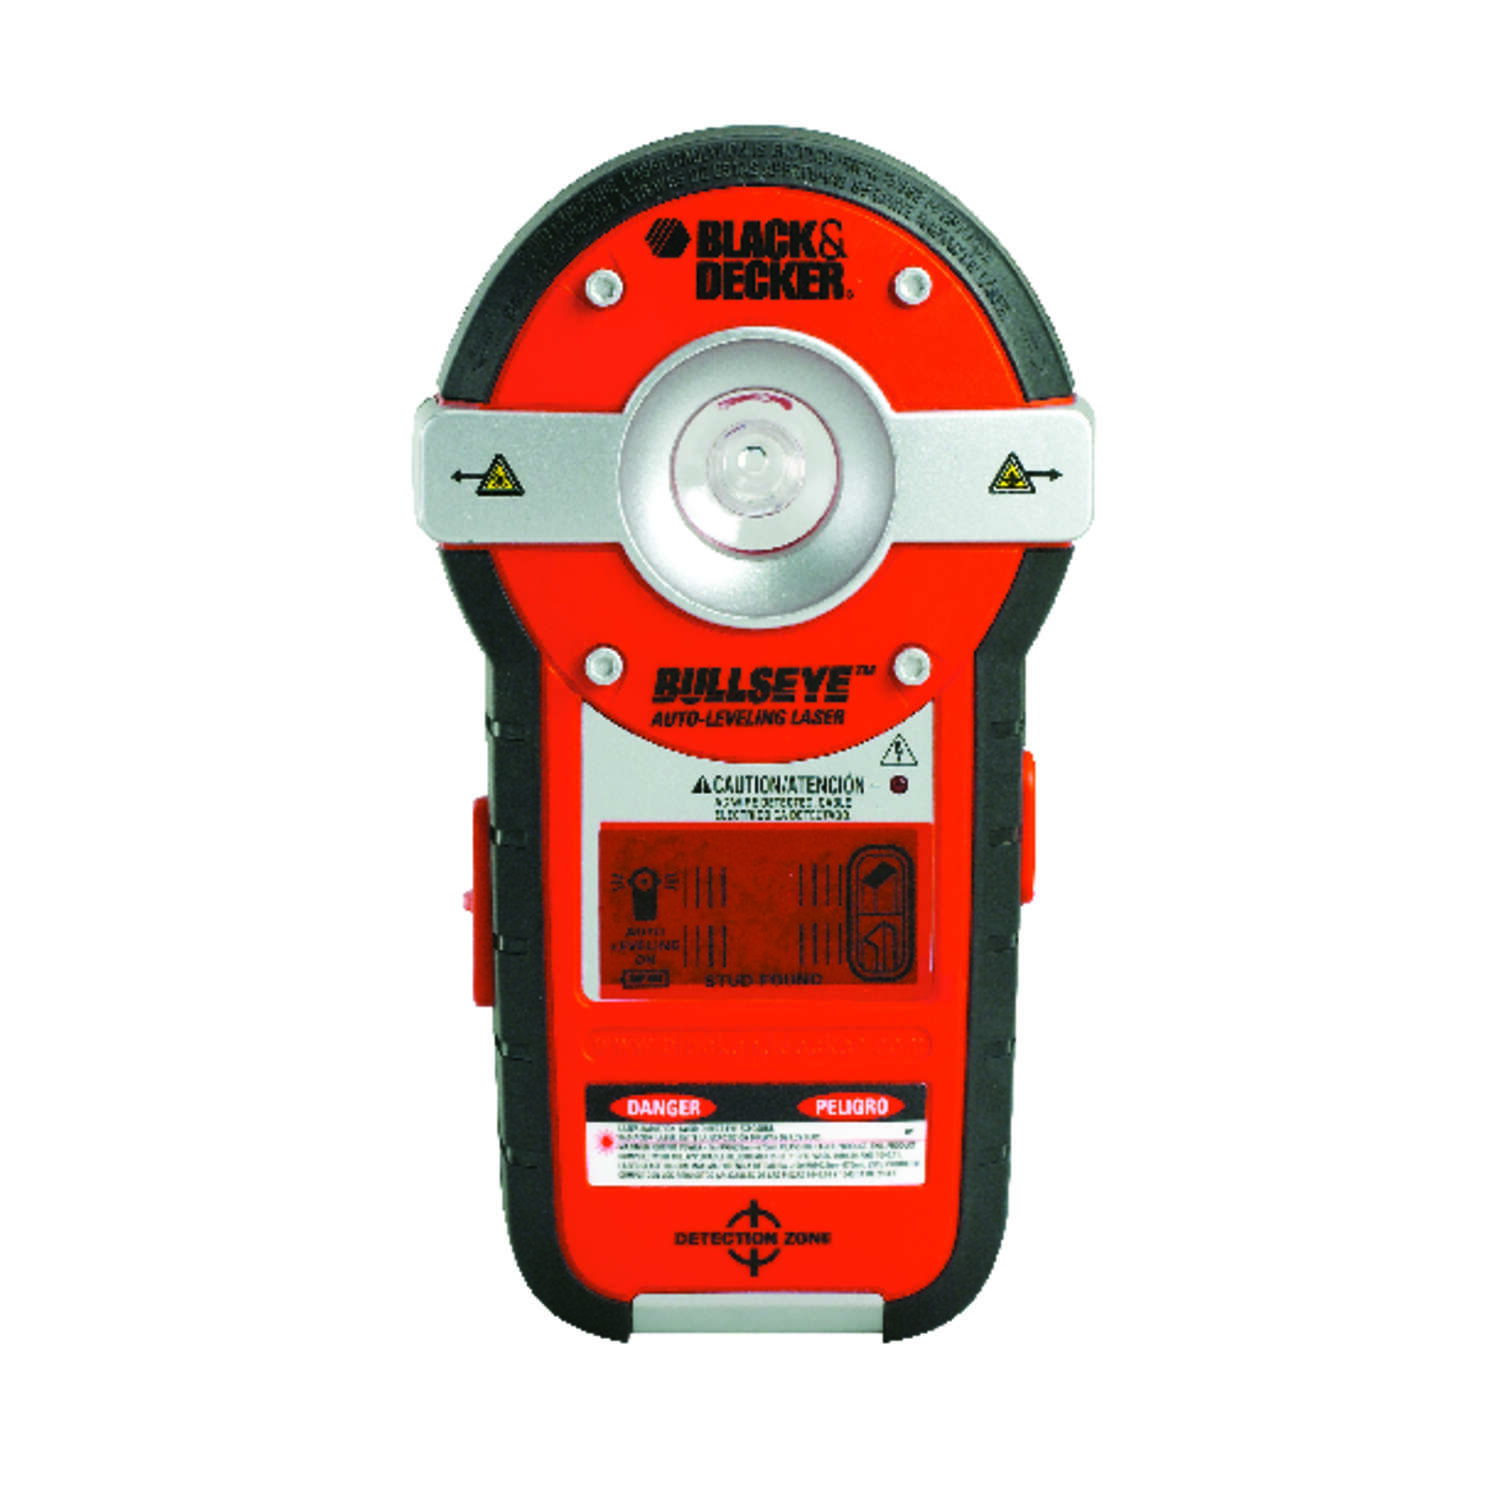 Black and Decker  BullsEye  Self Leveling Auto Leveling Laser Line and Stud Finder  1 pc.